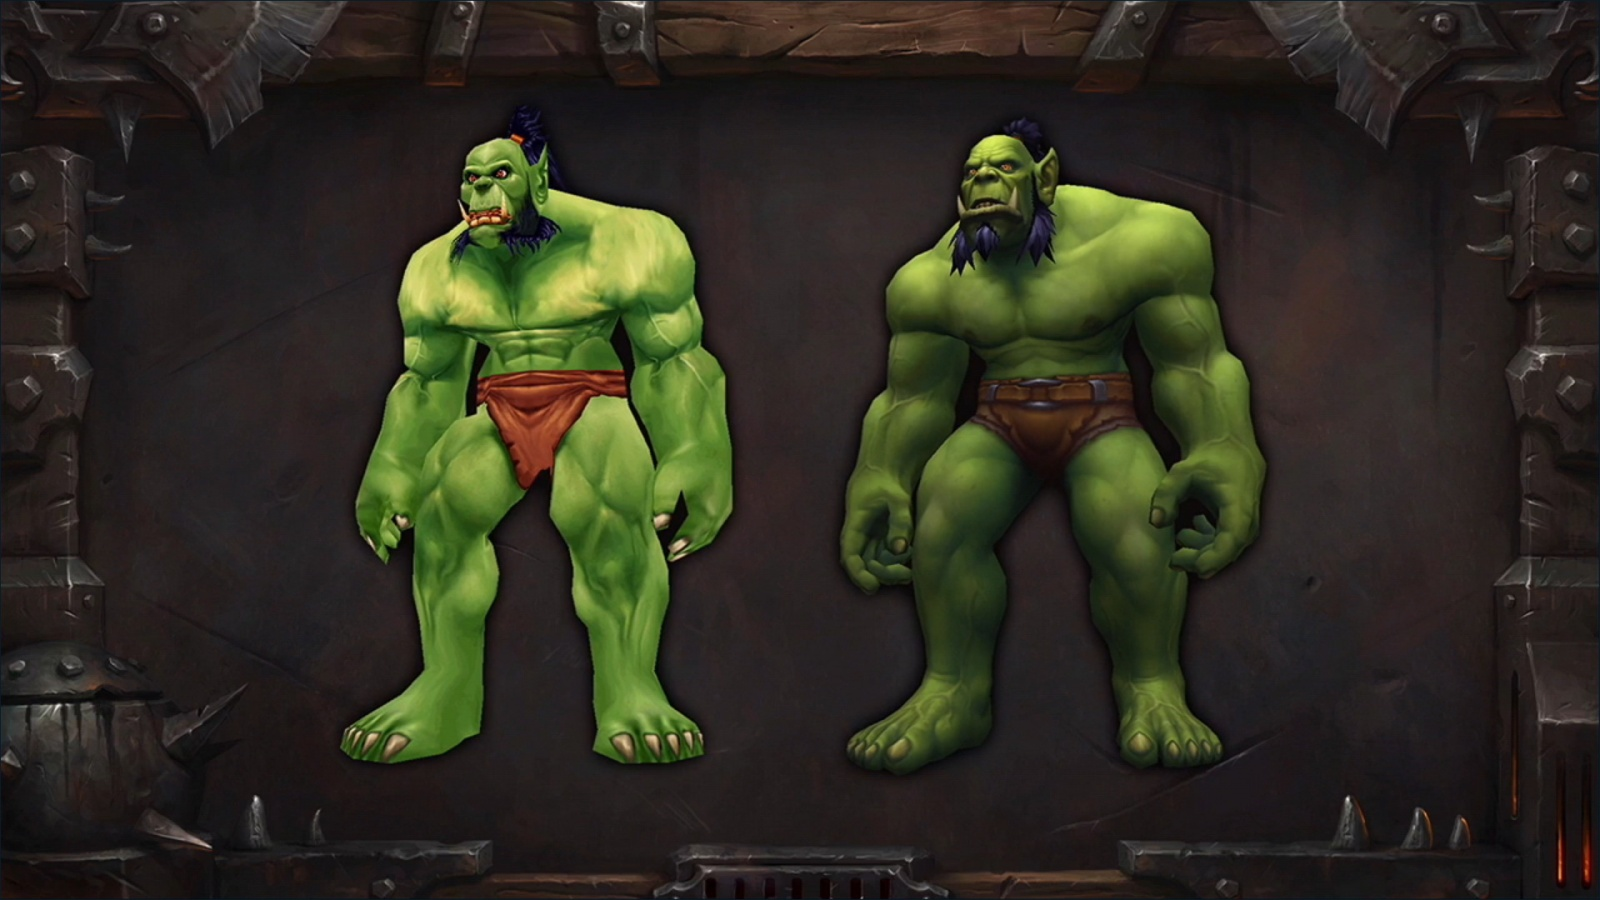 World of warcraft troll and orc porn sex scenes